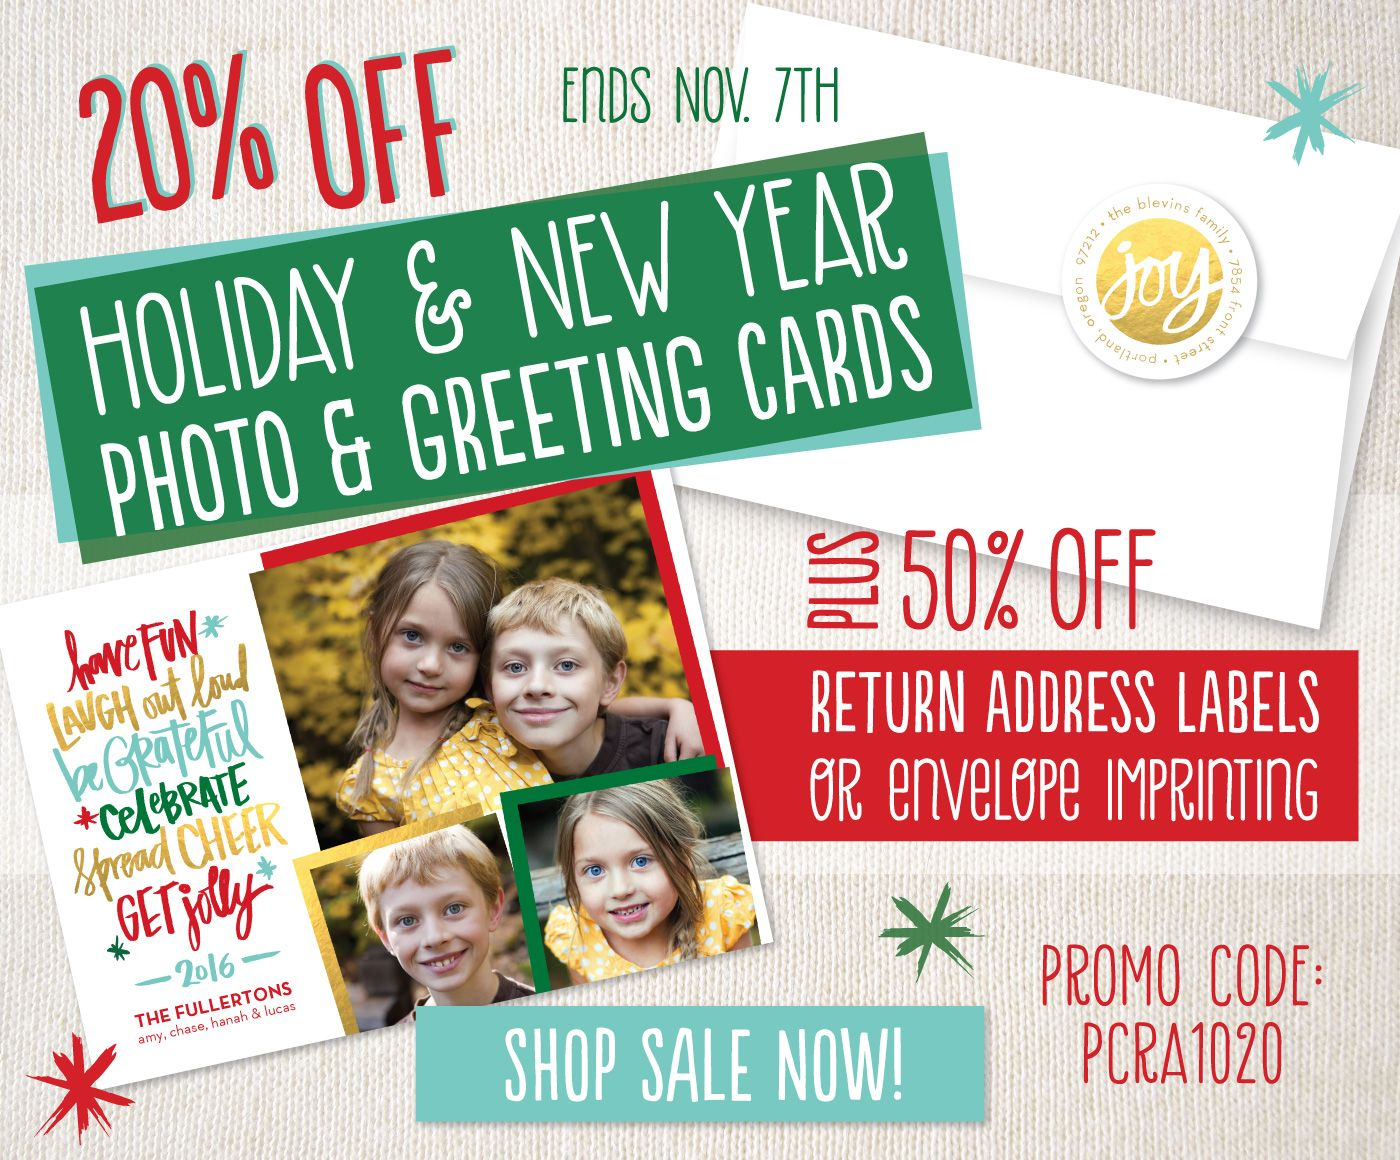 20 Off Holiday Photo And Greeting Cards Plus 50 Off Return Address